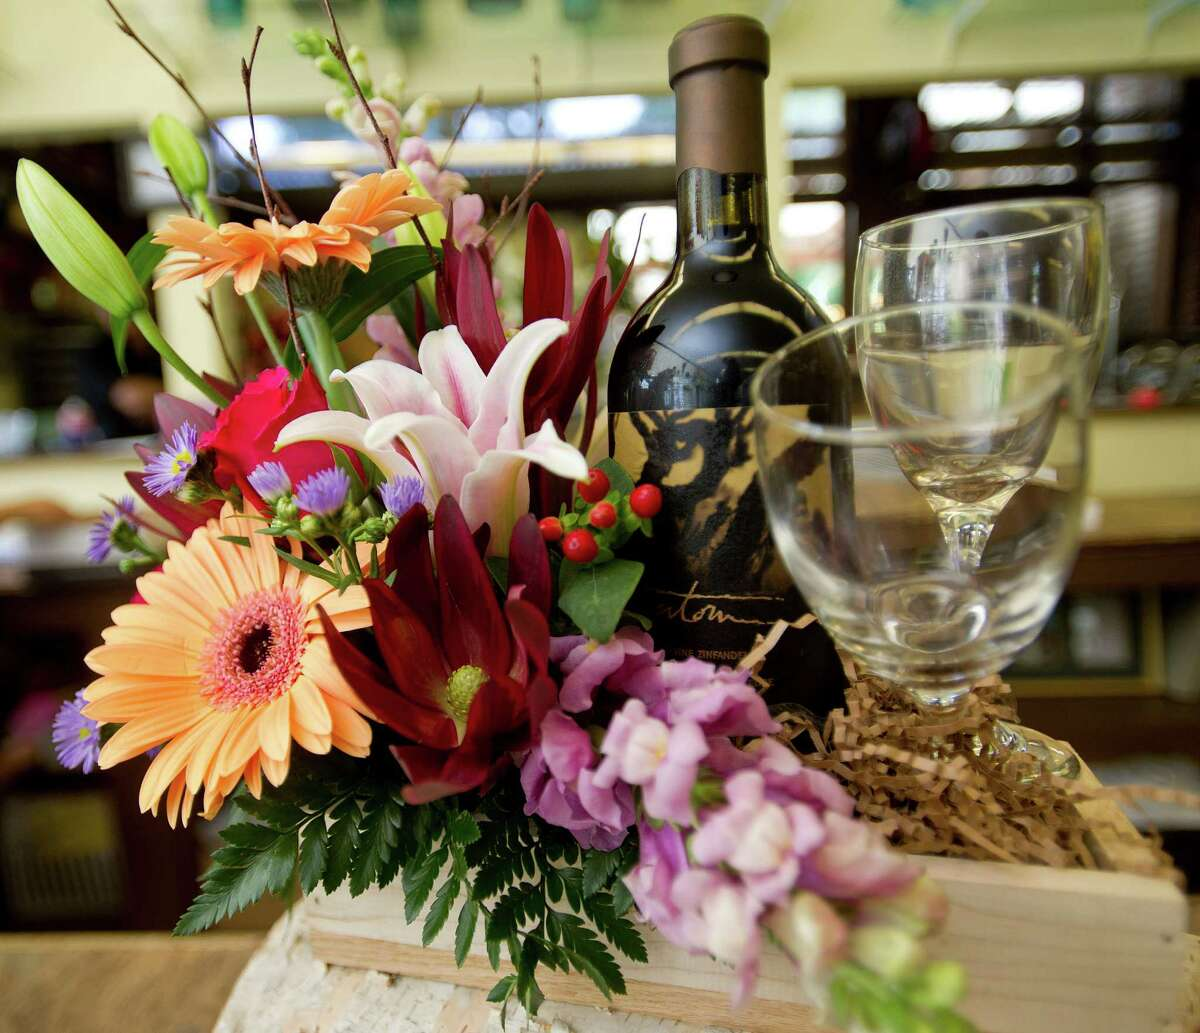 Bouquets and gift arrangements including bottles of wine sit on display at Stamford Florist on Thursday, August 1, 2013.